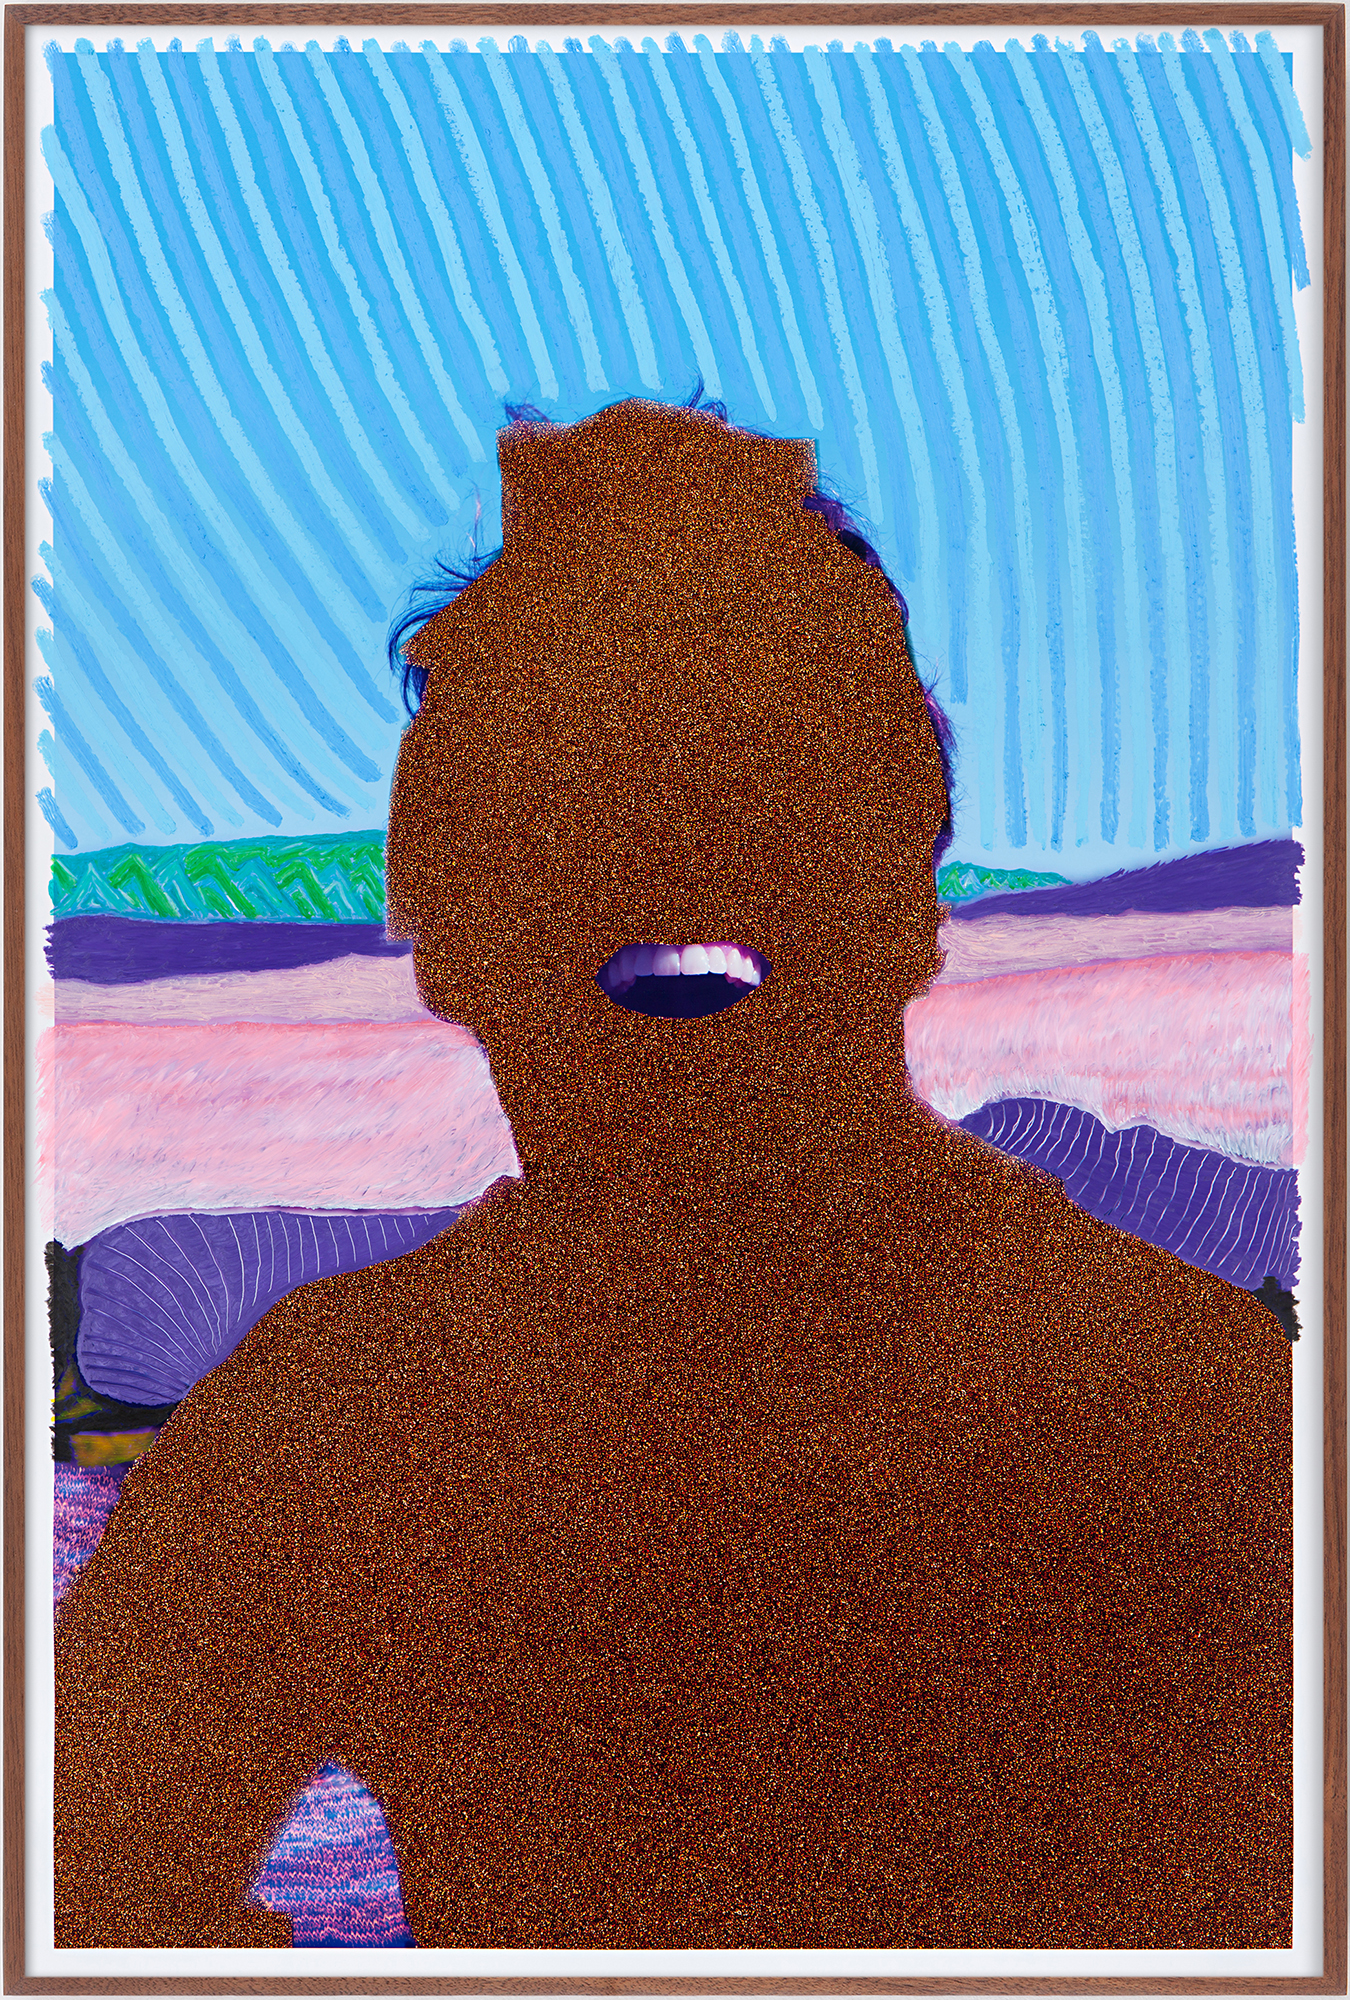 Evan Whale  California Bather (I Saw You), 2019  Oil, chemigram, and etching on c-print, artist frame  39 5/8 x 26 5/8 inches (100.6 x 67.6 cm)  Unique